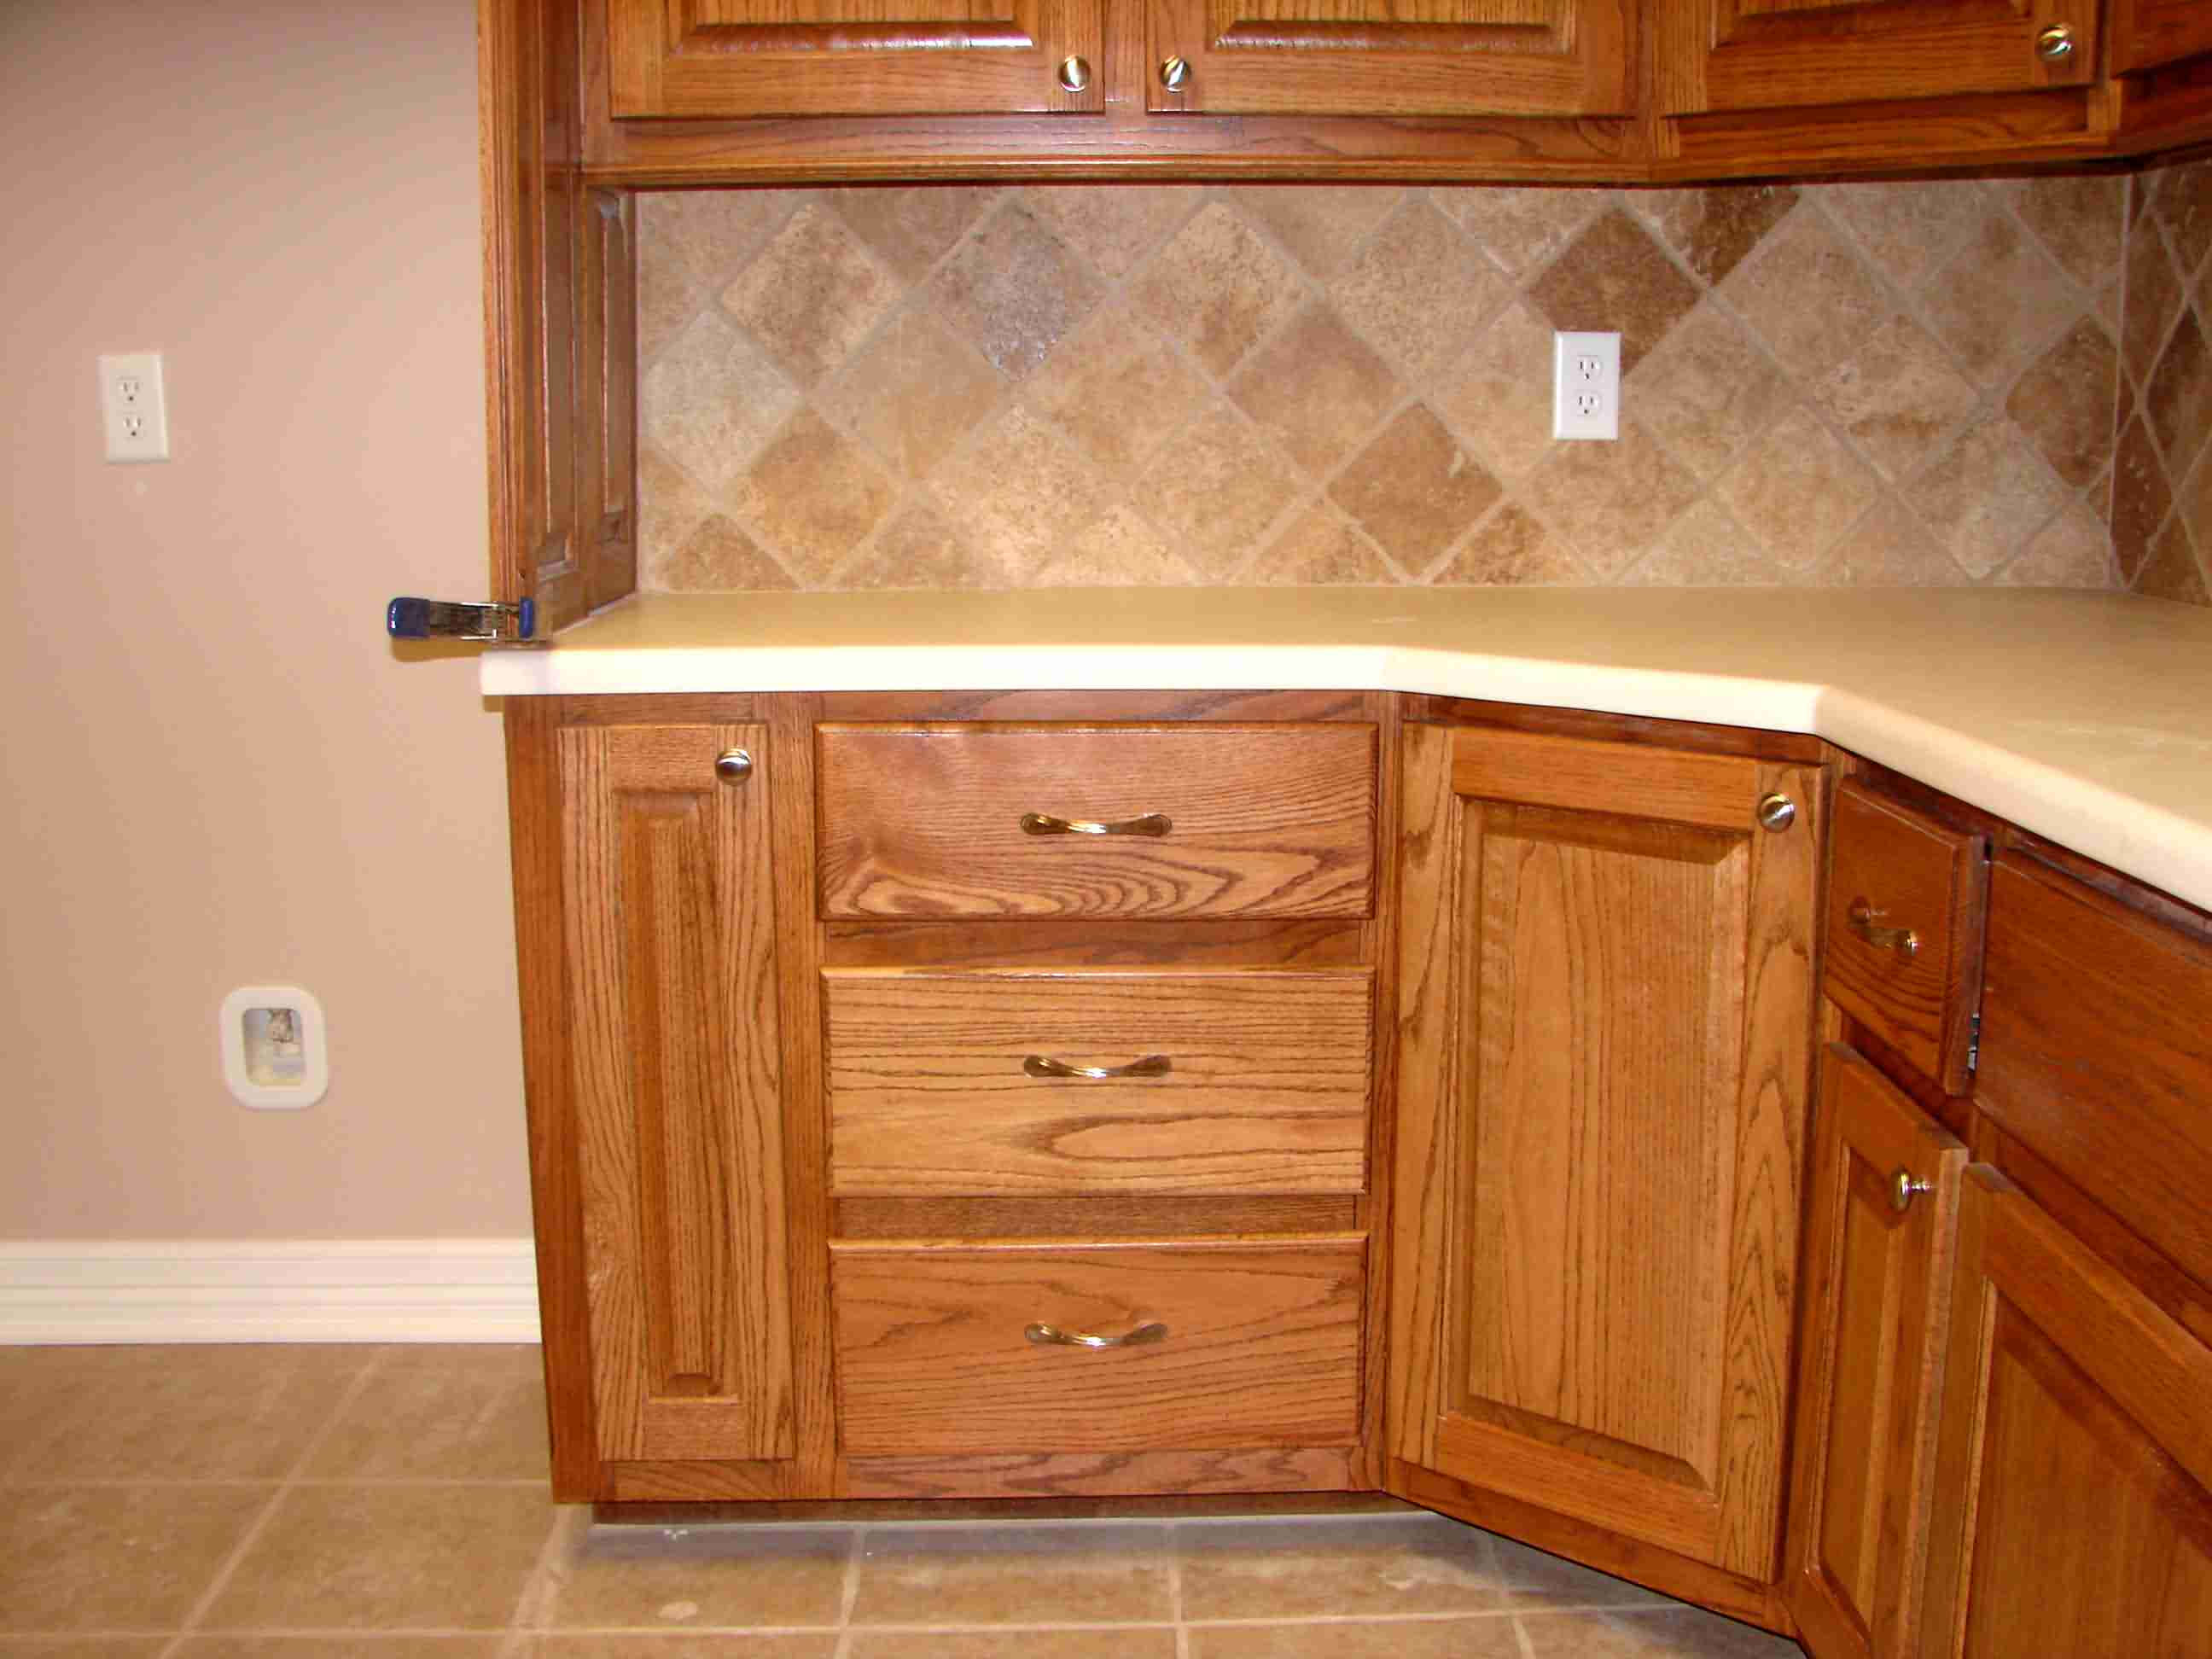 Kitchen Cabinet Ideas: Define Yourself with Extraordinary Cabinet